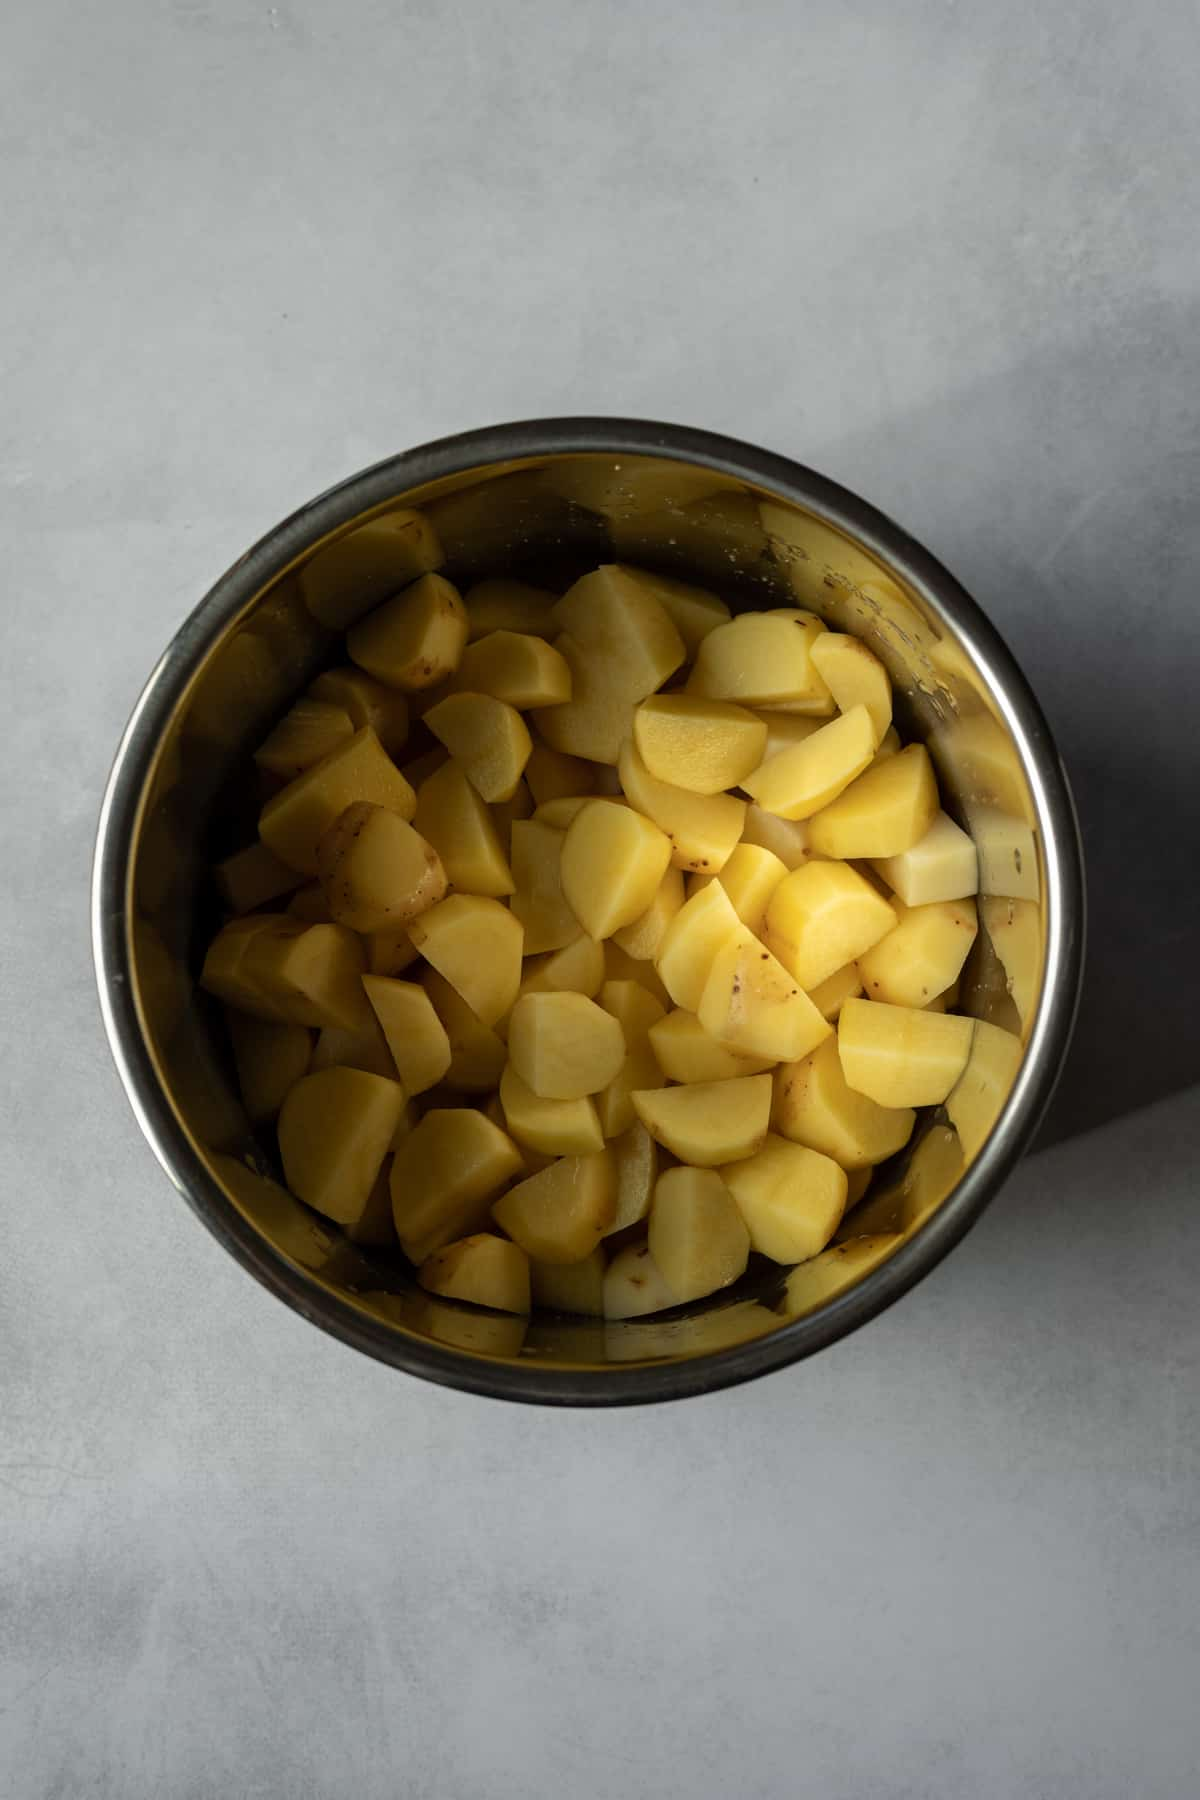 peeled and cut Yukon gold potatoes in an Instant Pot insert